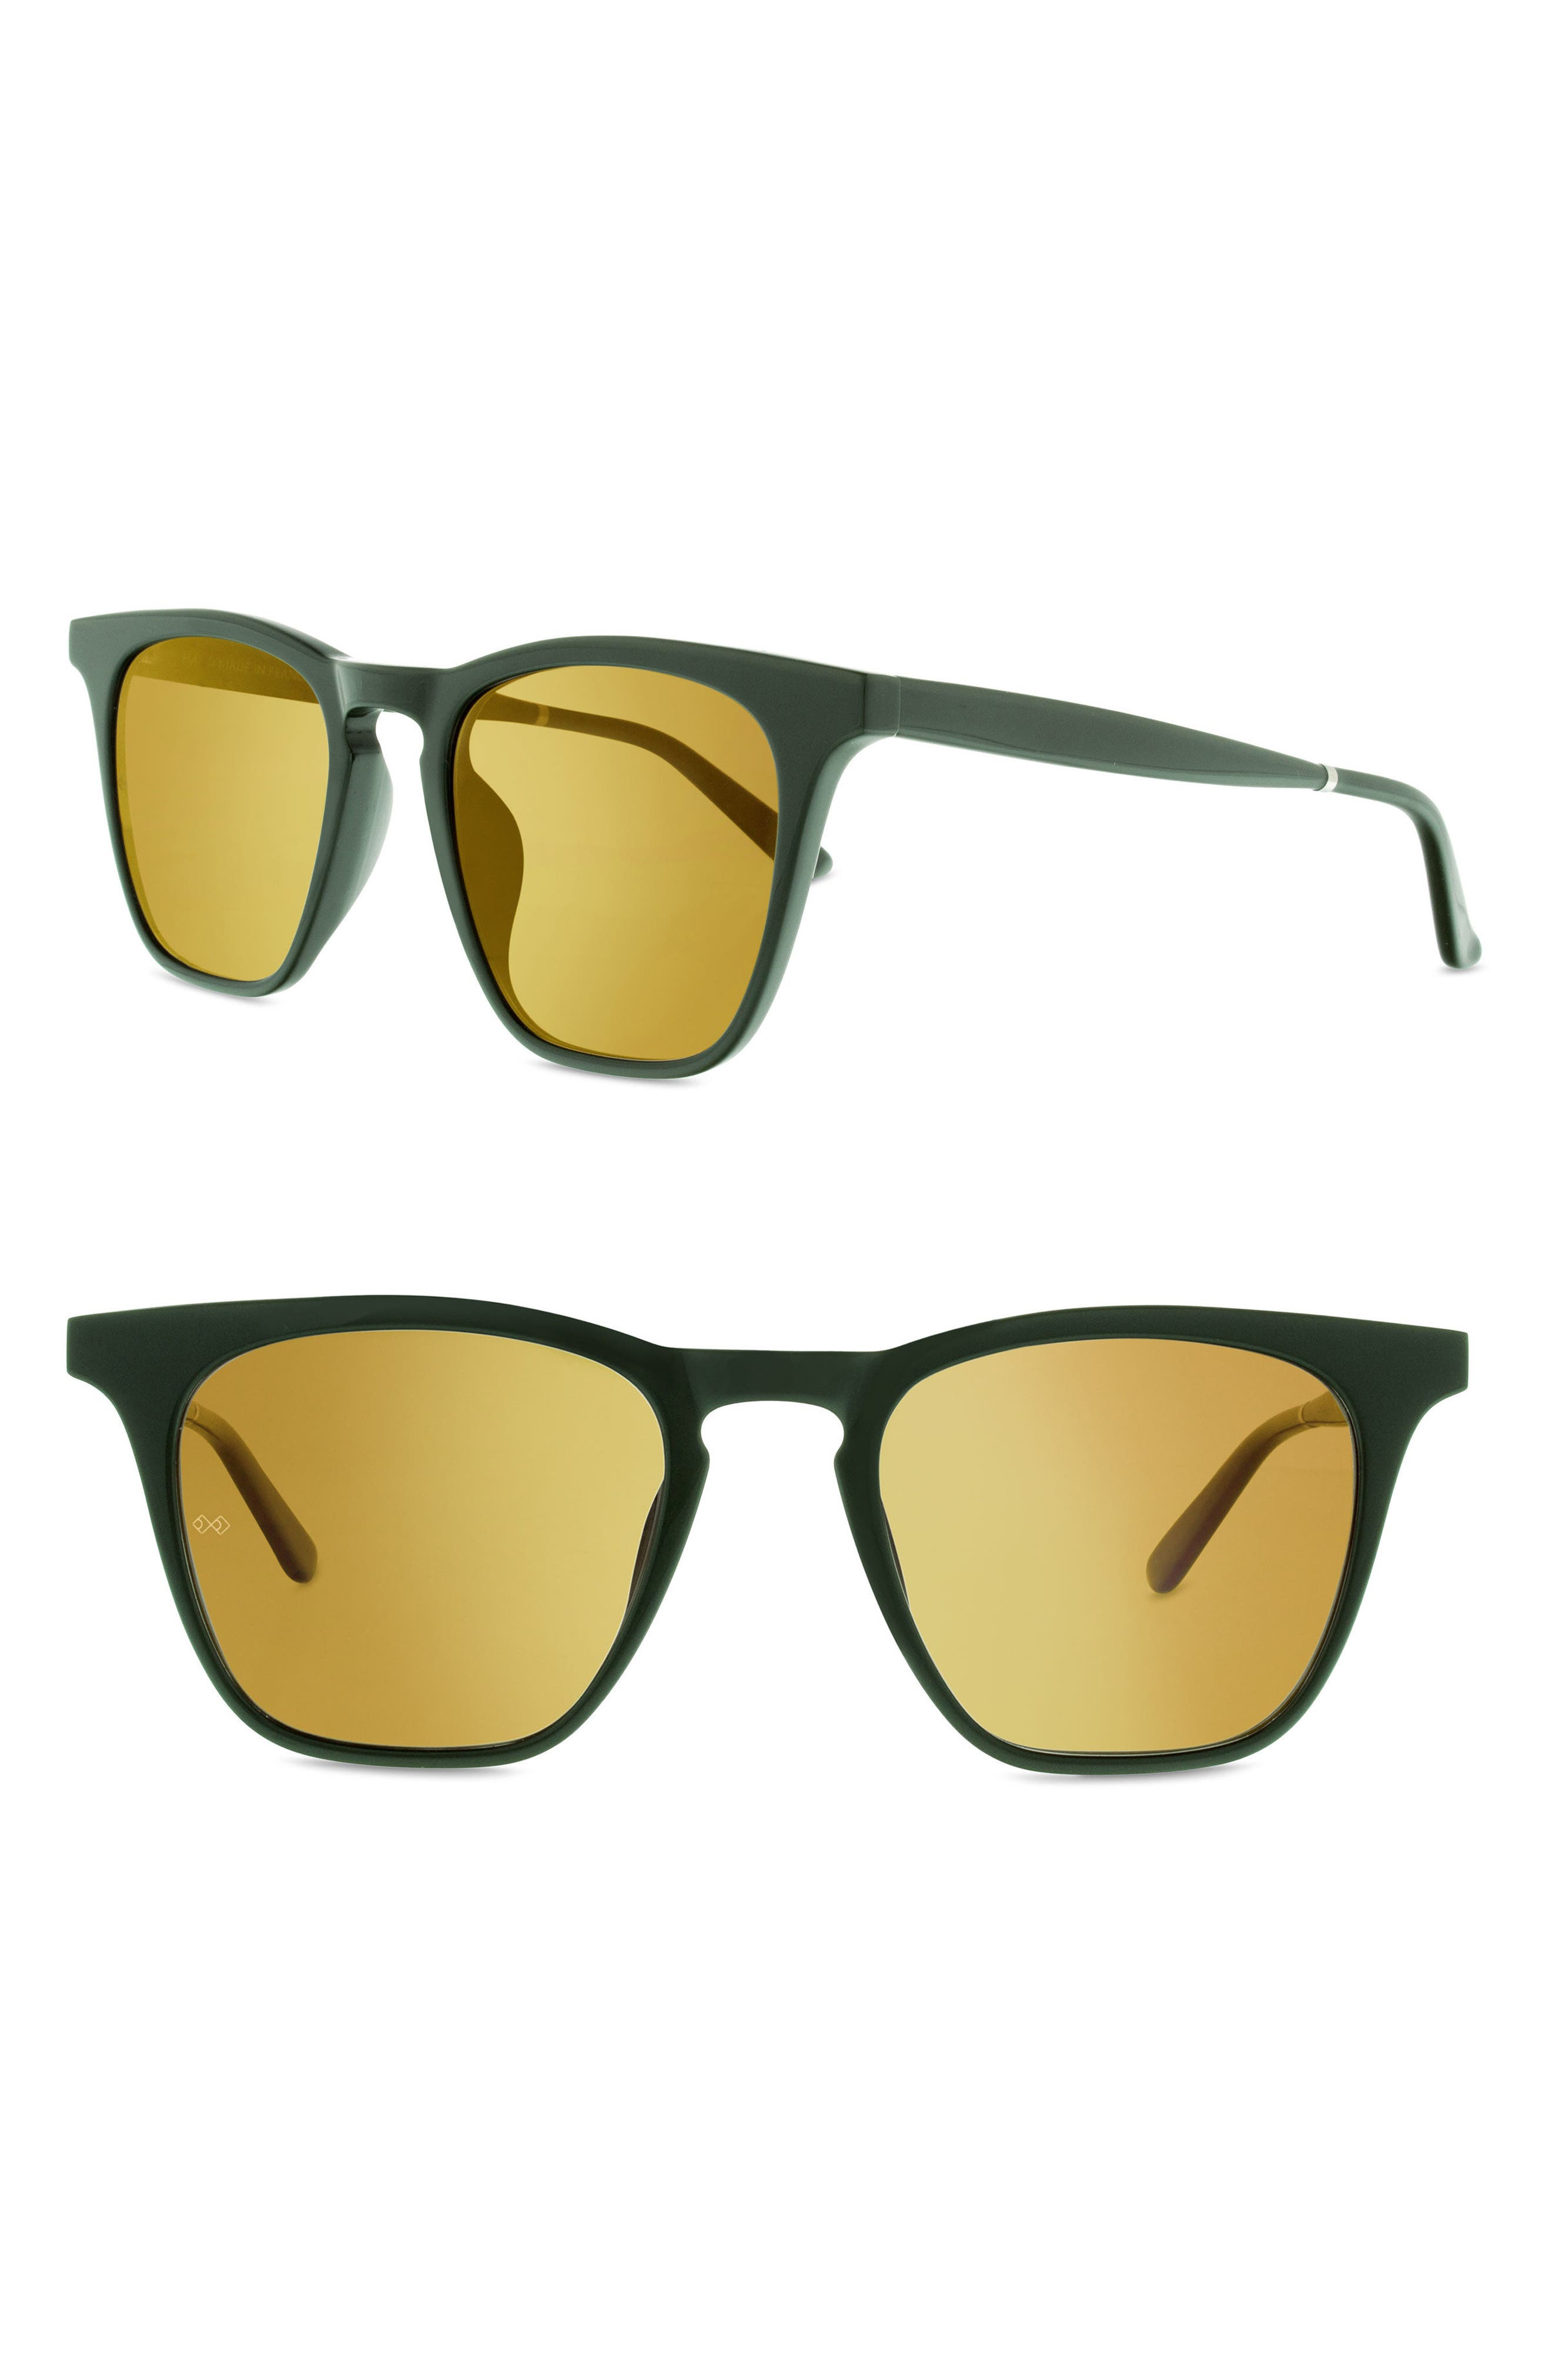 Rocket 88 50mm Square Sunglasses,                         Main,                         color, Green/ Gold Mirror